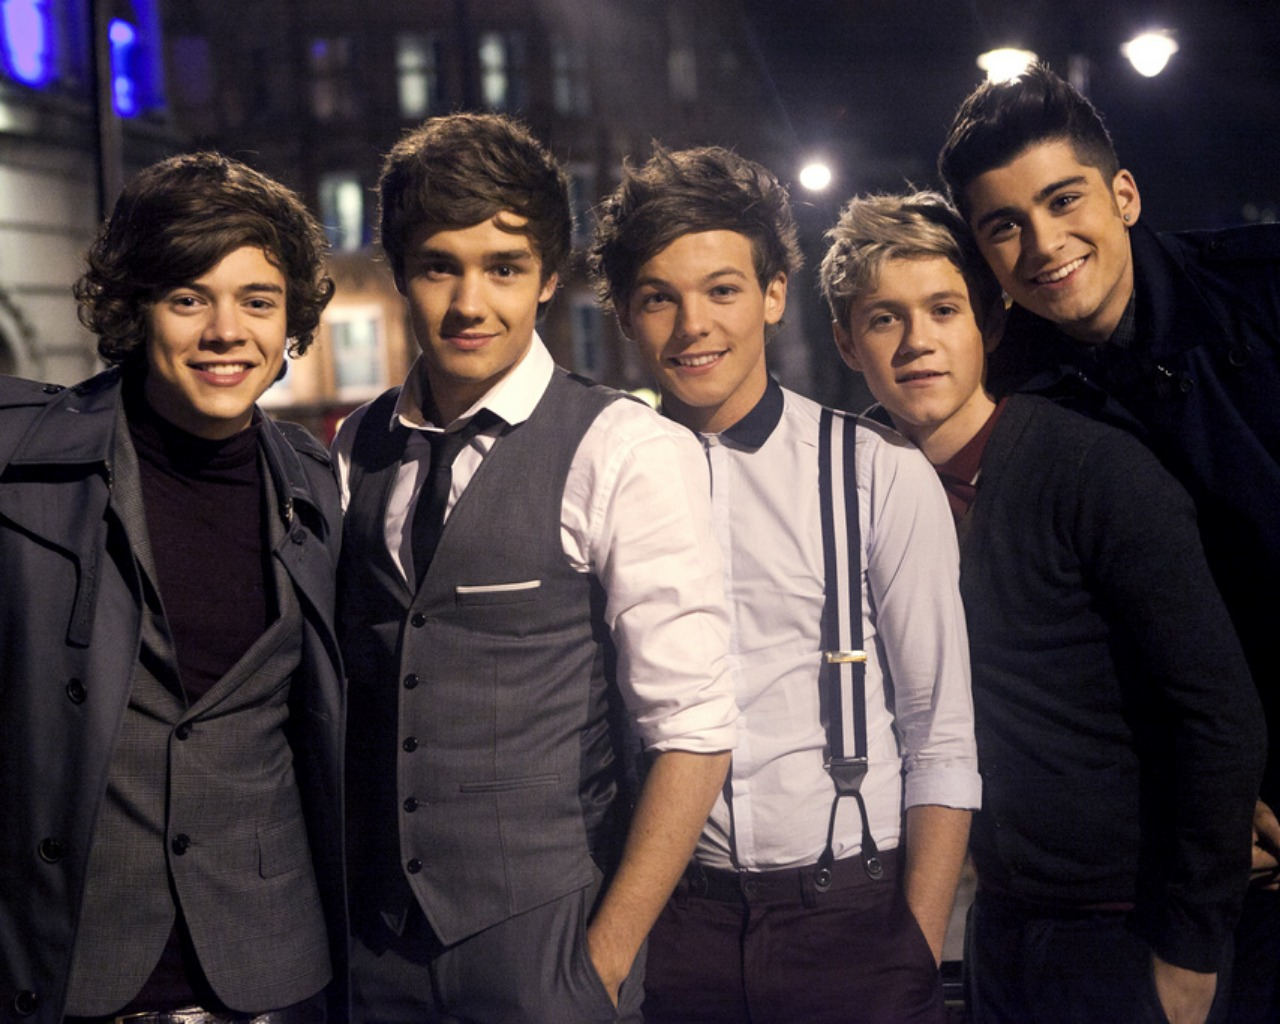 TREND WALLPAPERS: One Direction Wallpapers